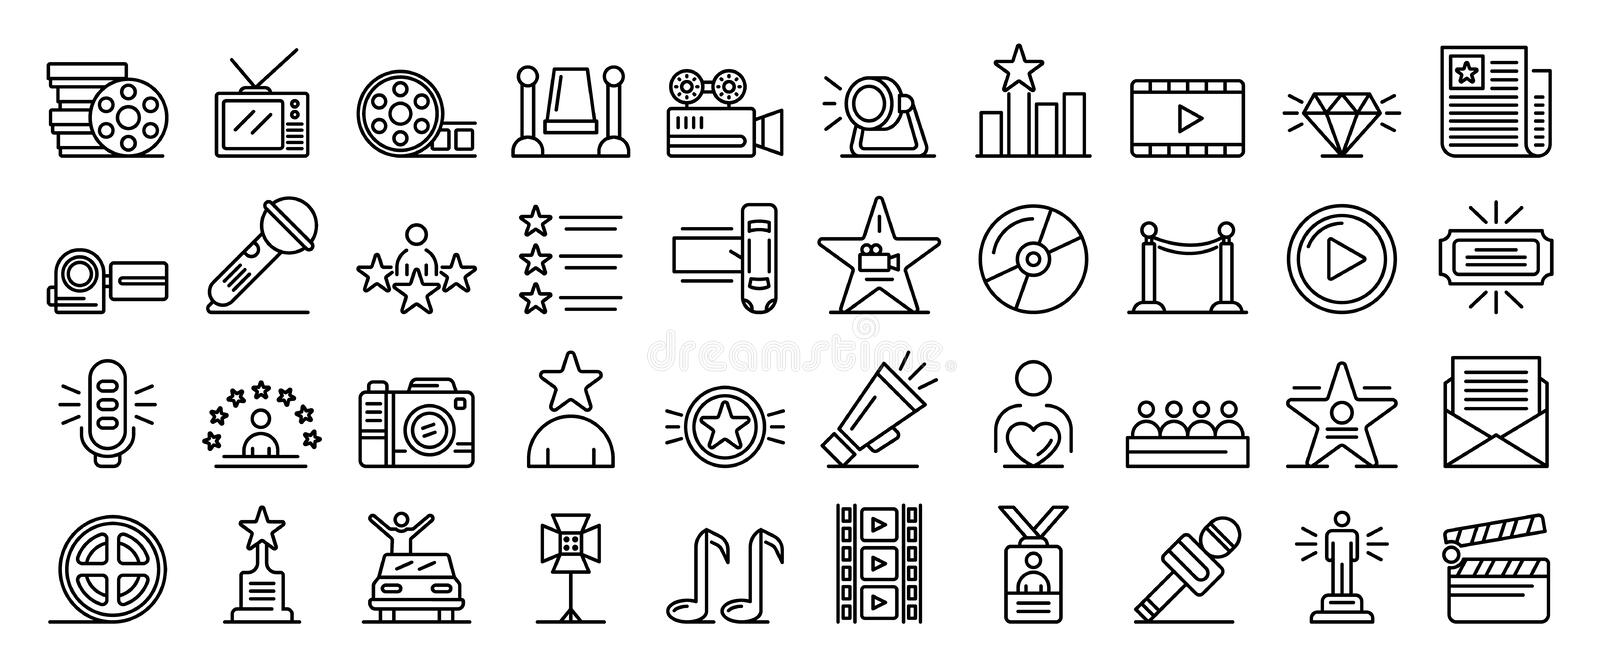 Celebrity icons set, outline style stock illustration